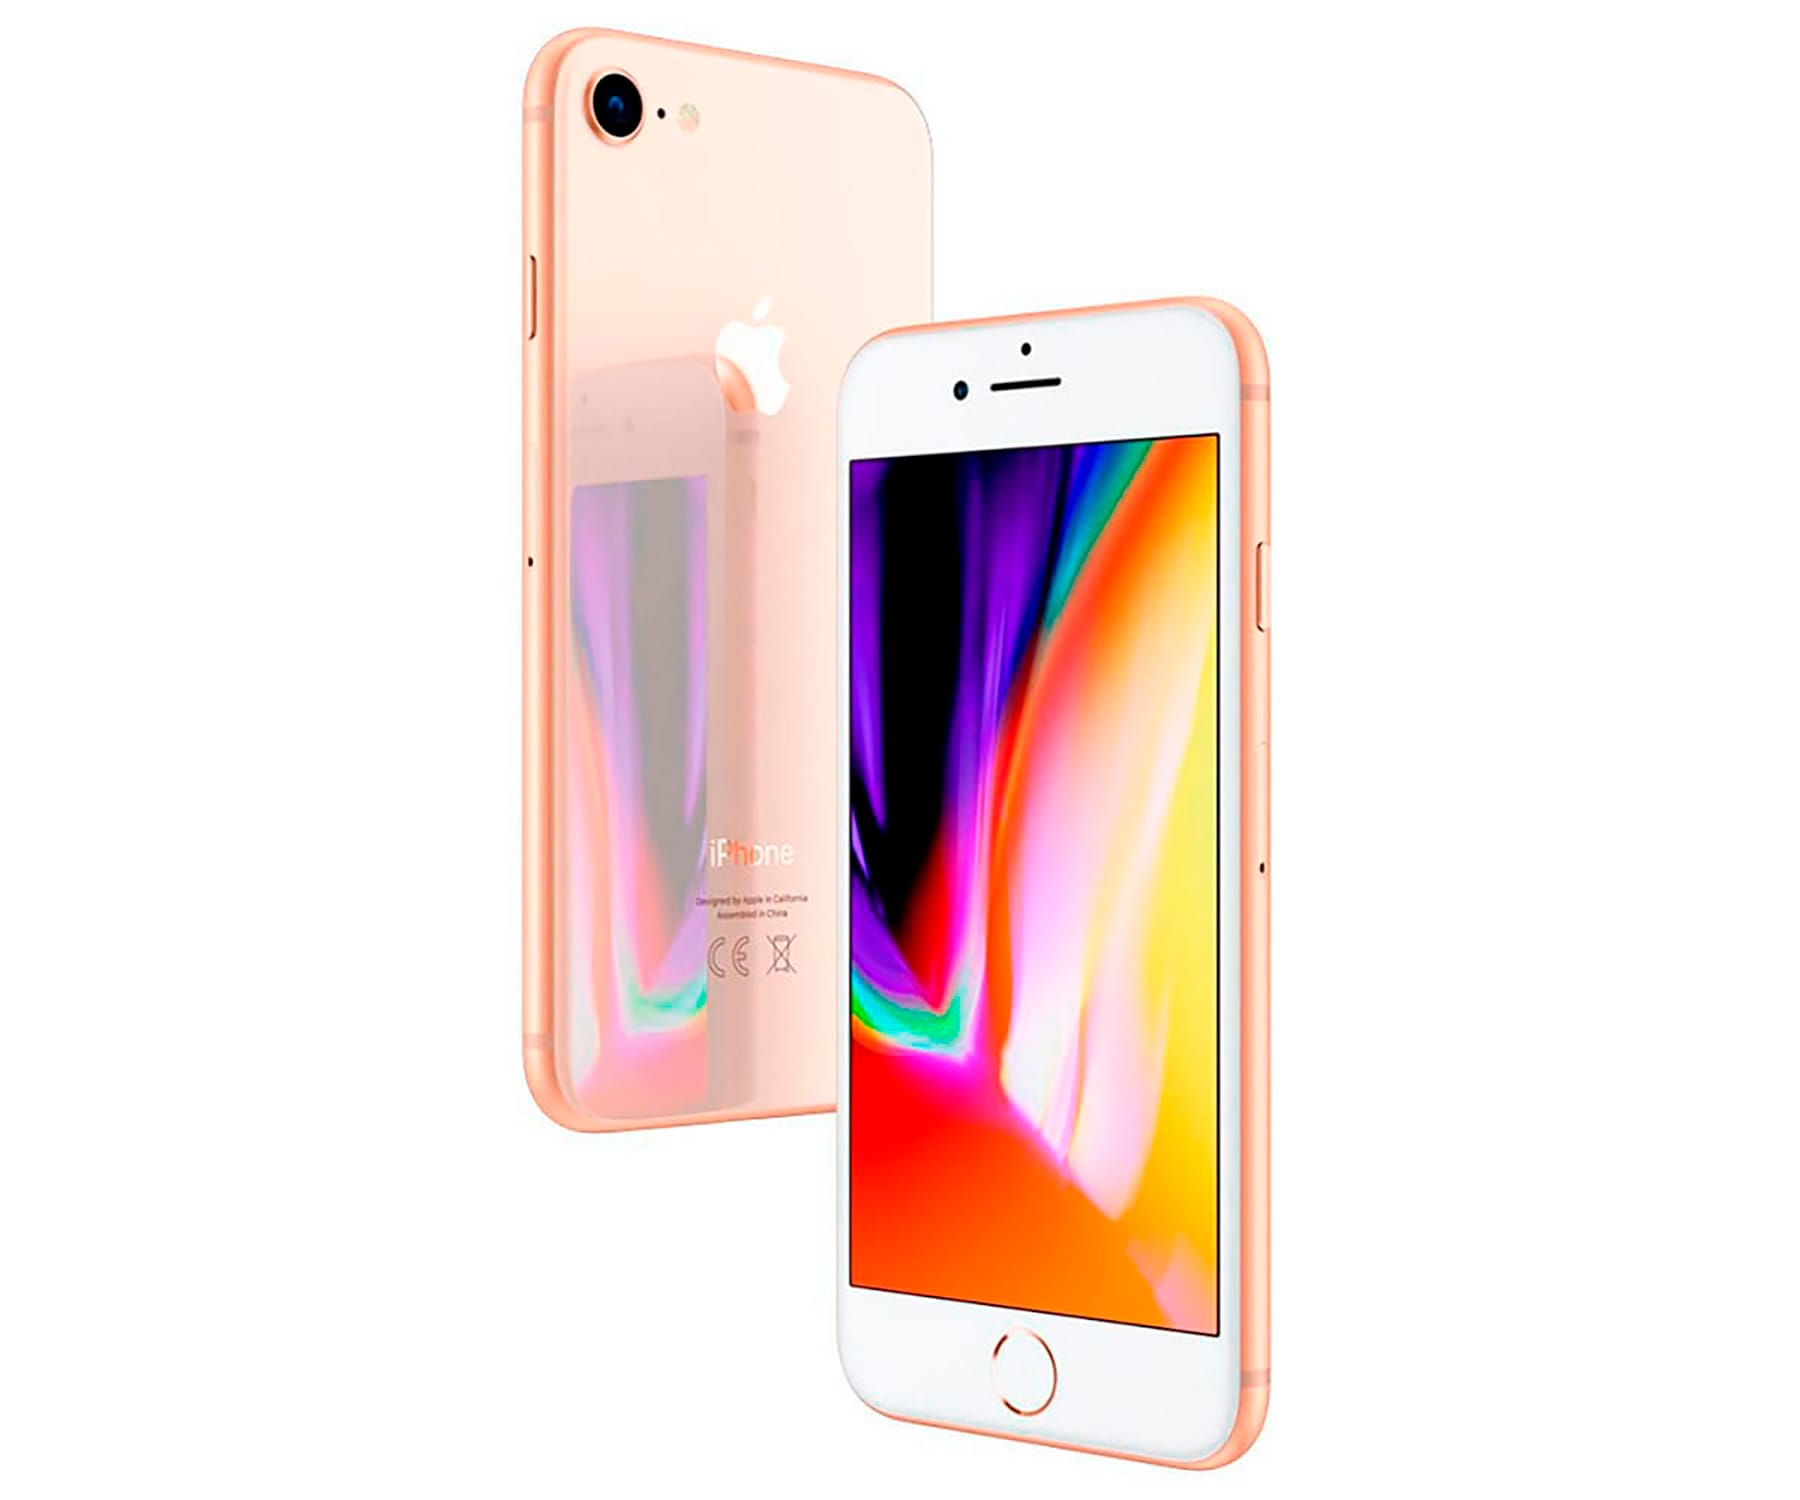 APPLE IPHONE 8 64GB ORO REACONDICIONADO CPO MÓVIL 4G 4.7 RETINA HD/6CORE/64GB/2GB RAM/12MP/7MP